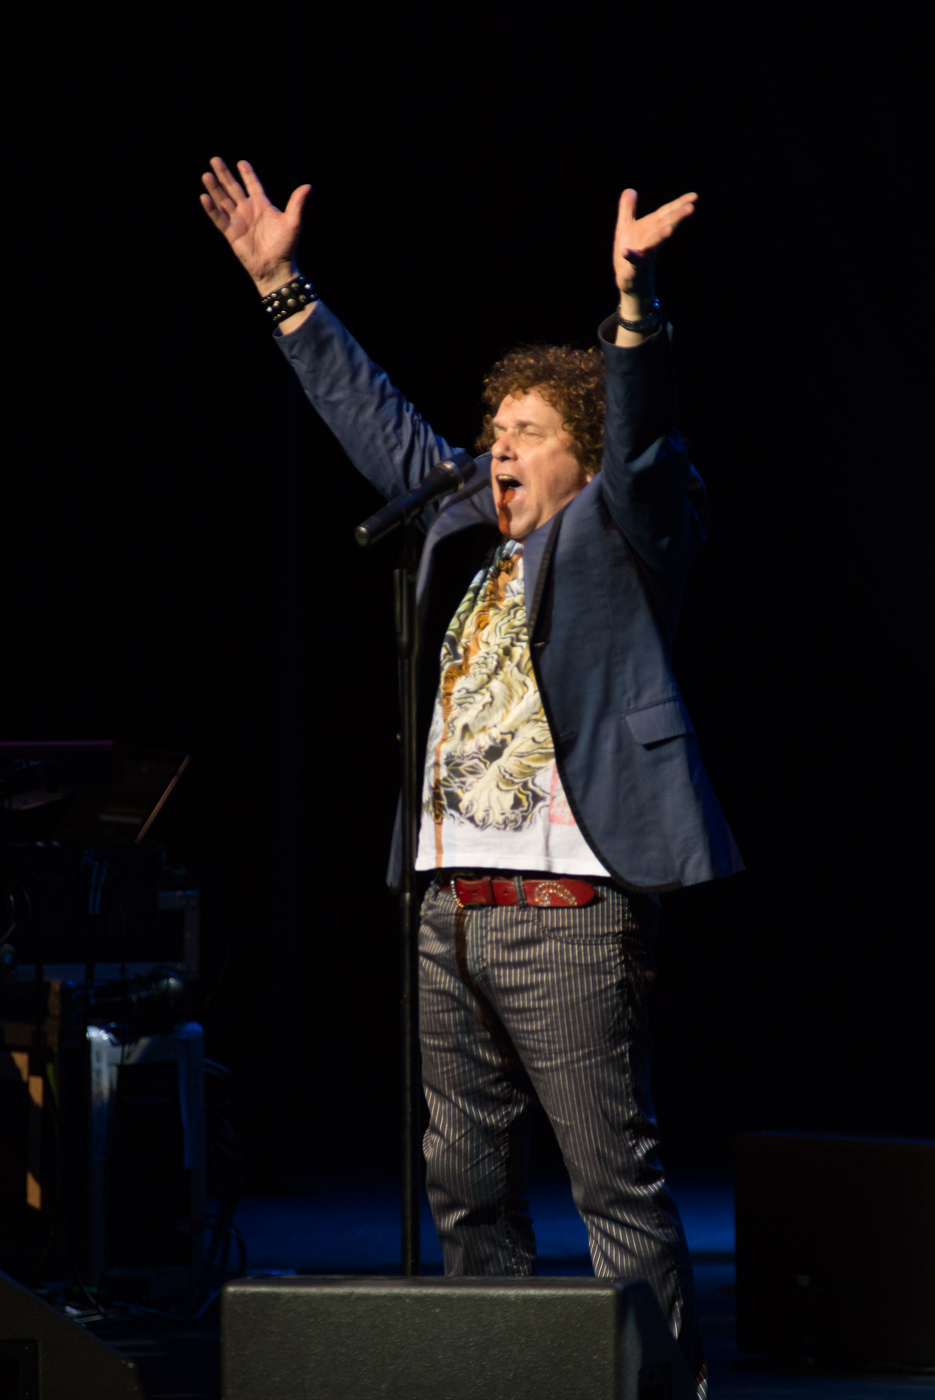 Leo Sayer at Bord Gais Energy Theatre by Sean Smyth (16-10-15) (36 of 129)